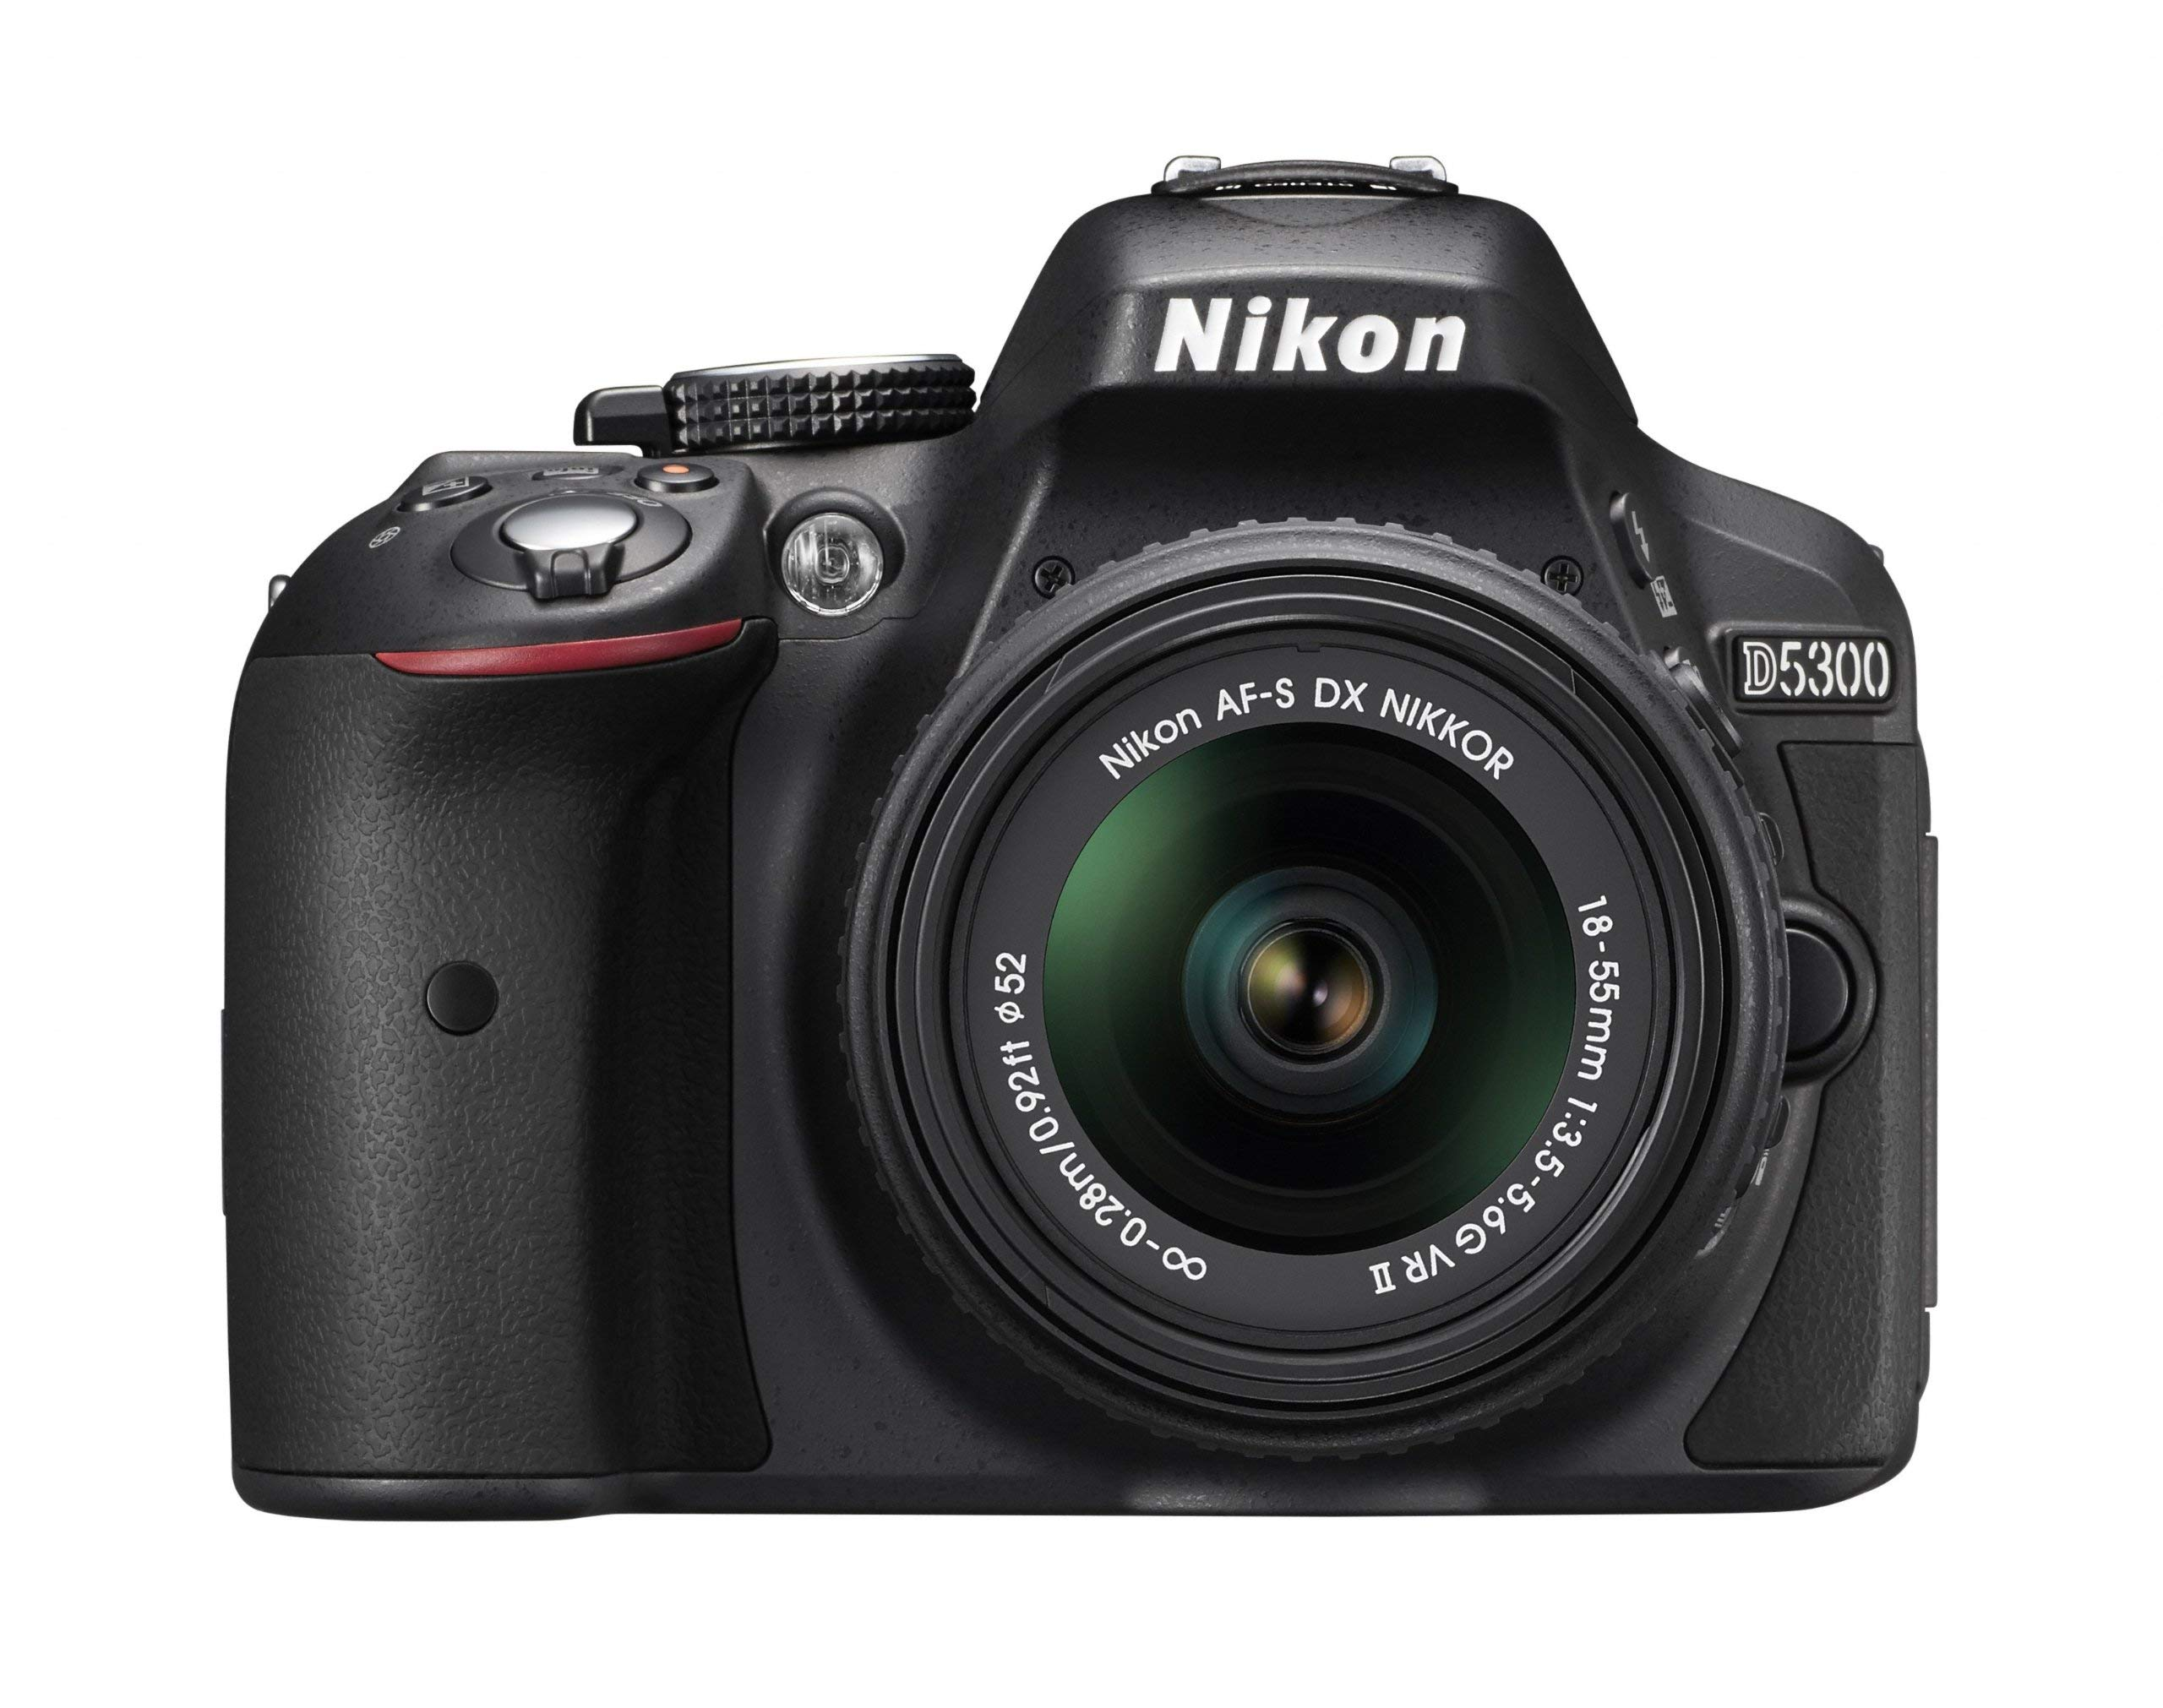 Nikon D5300 24.2 MP CMOS Digital SLR Camera with Built-in Wi-Fi and GPS Body Only (Black) by Nikon (Image #2)